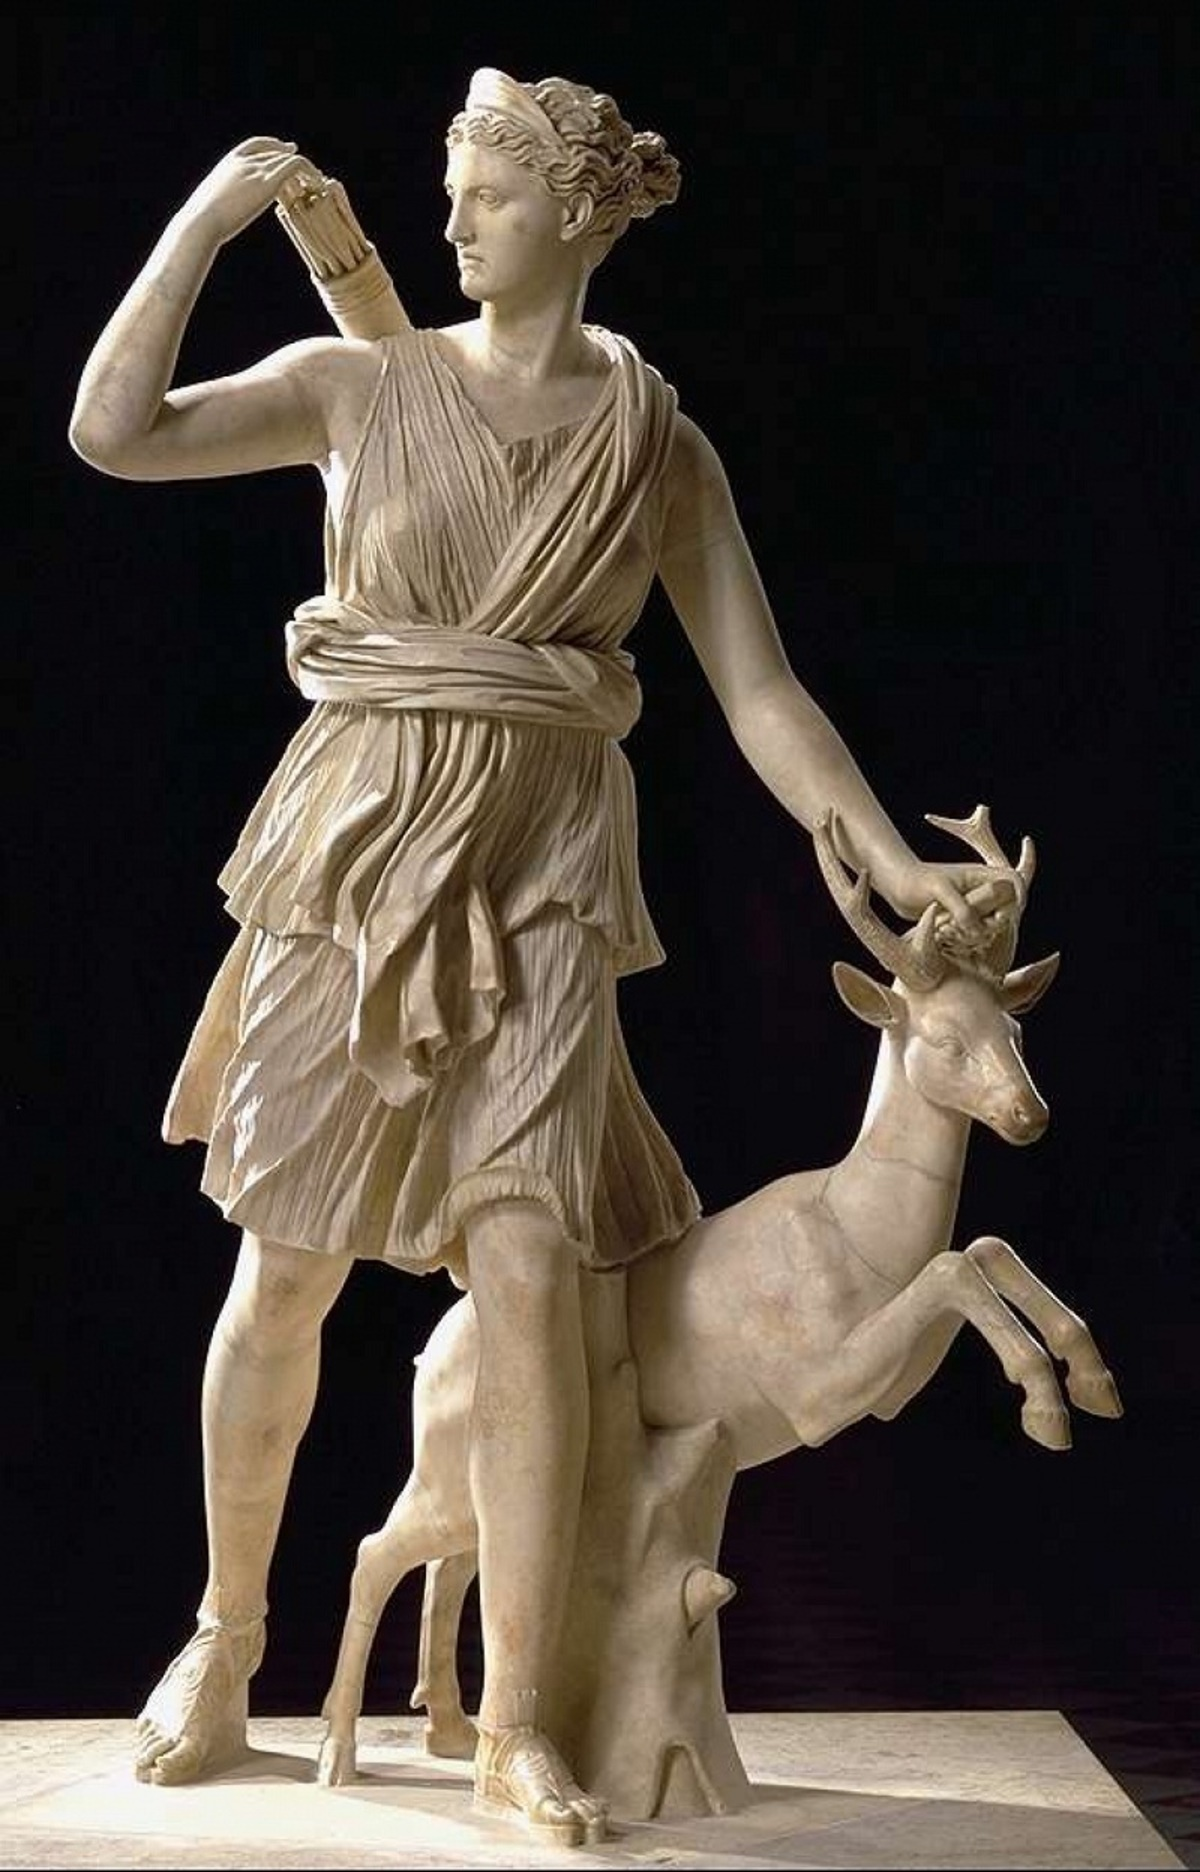 🏹 Artemis :: Greek Goddess of the Hunt and the Moon